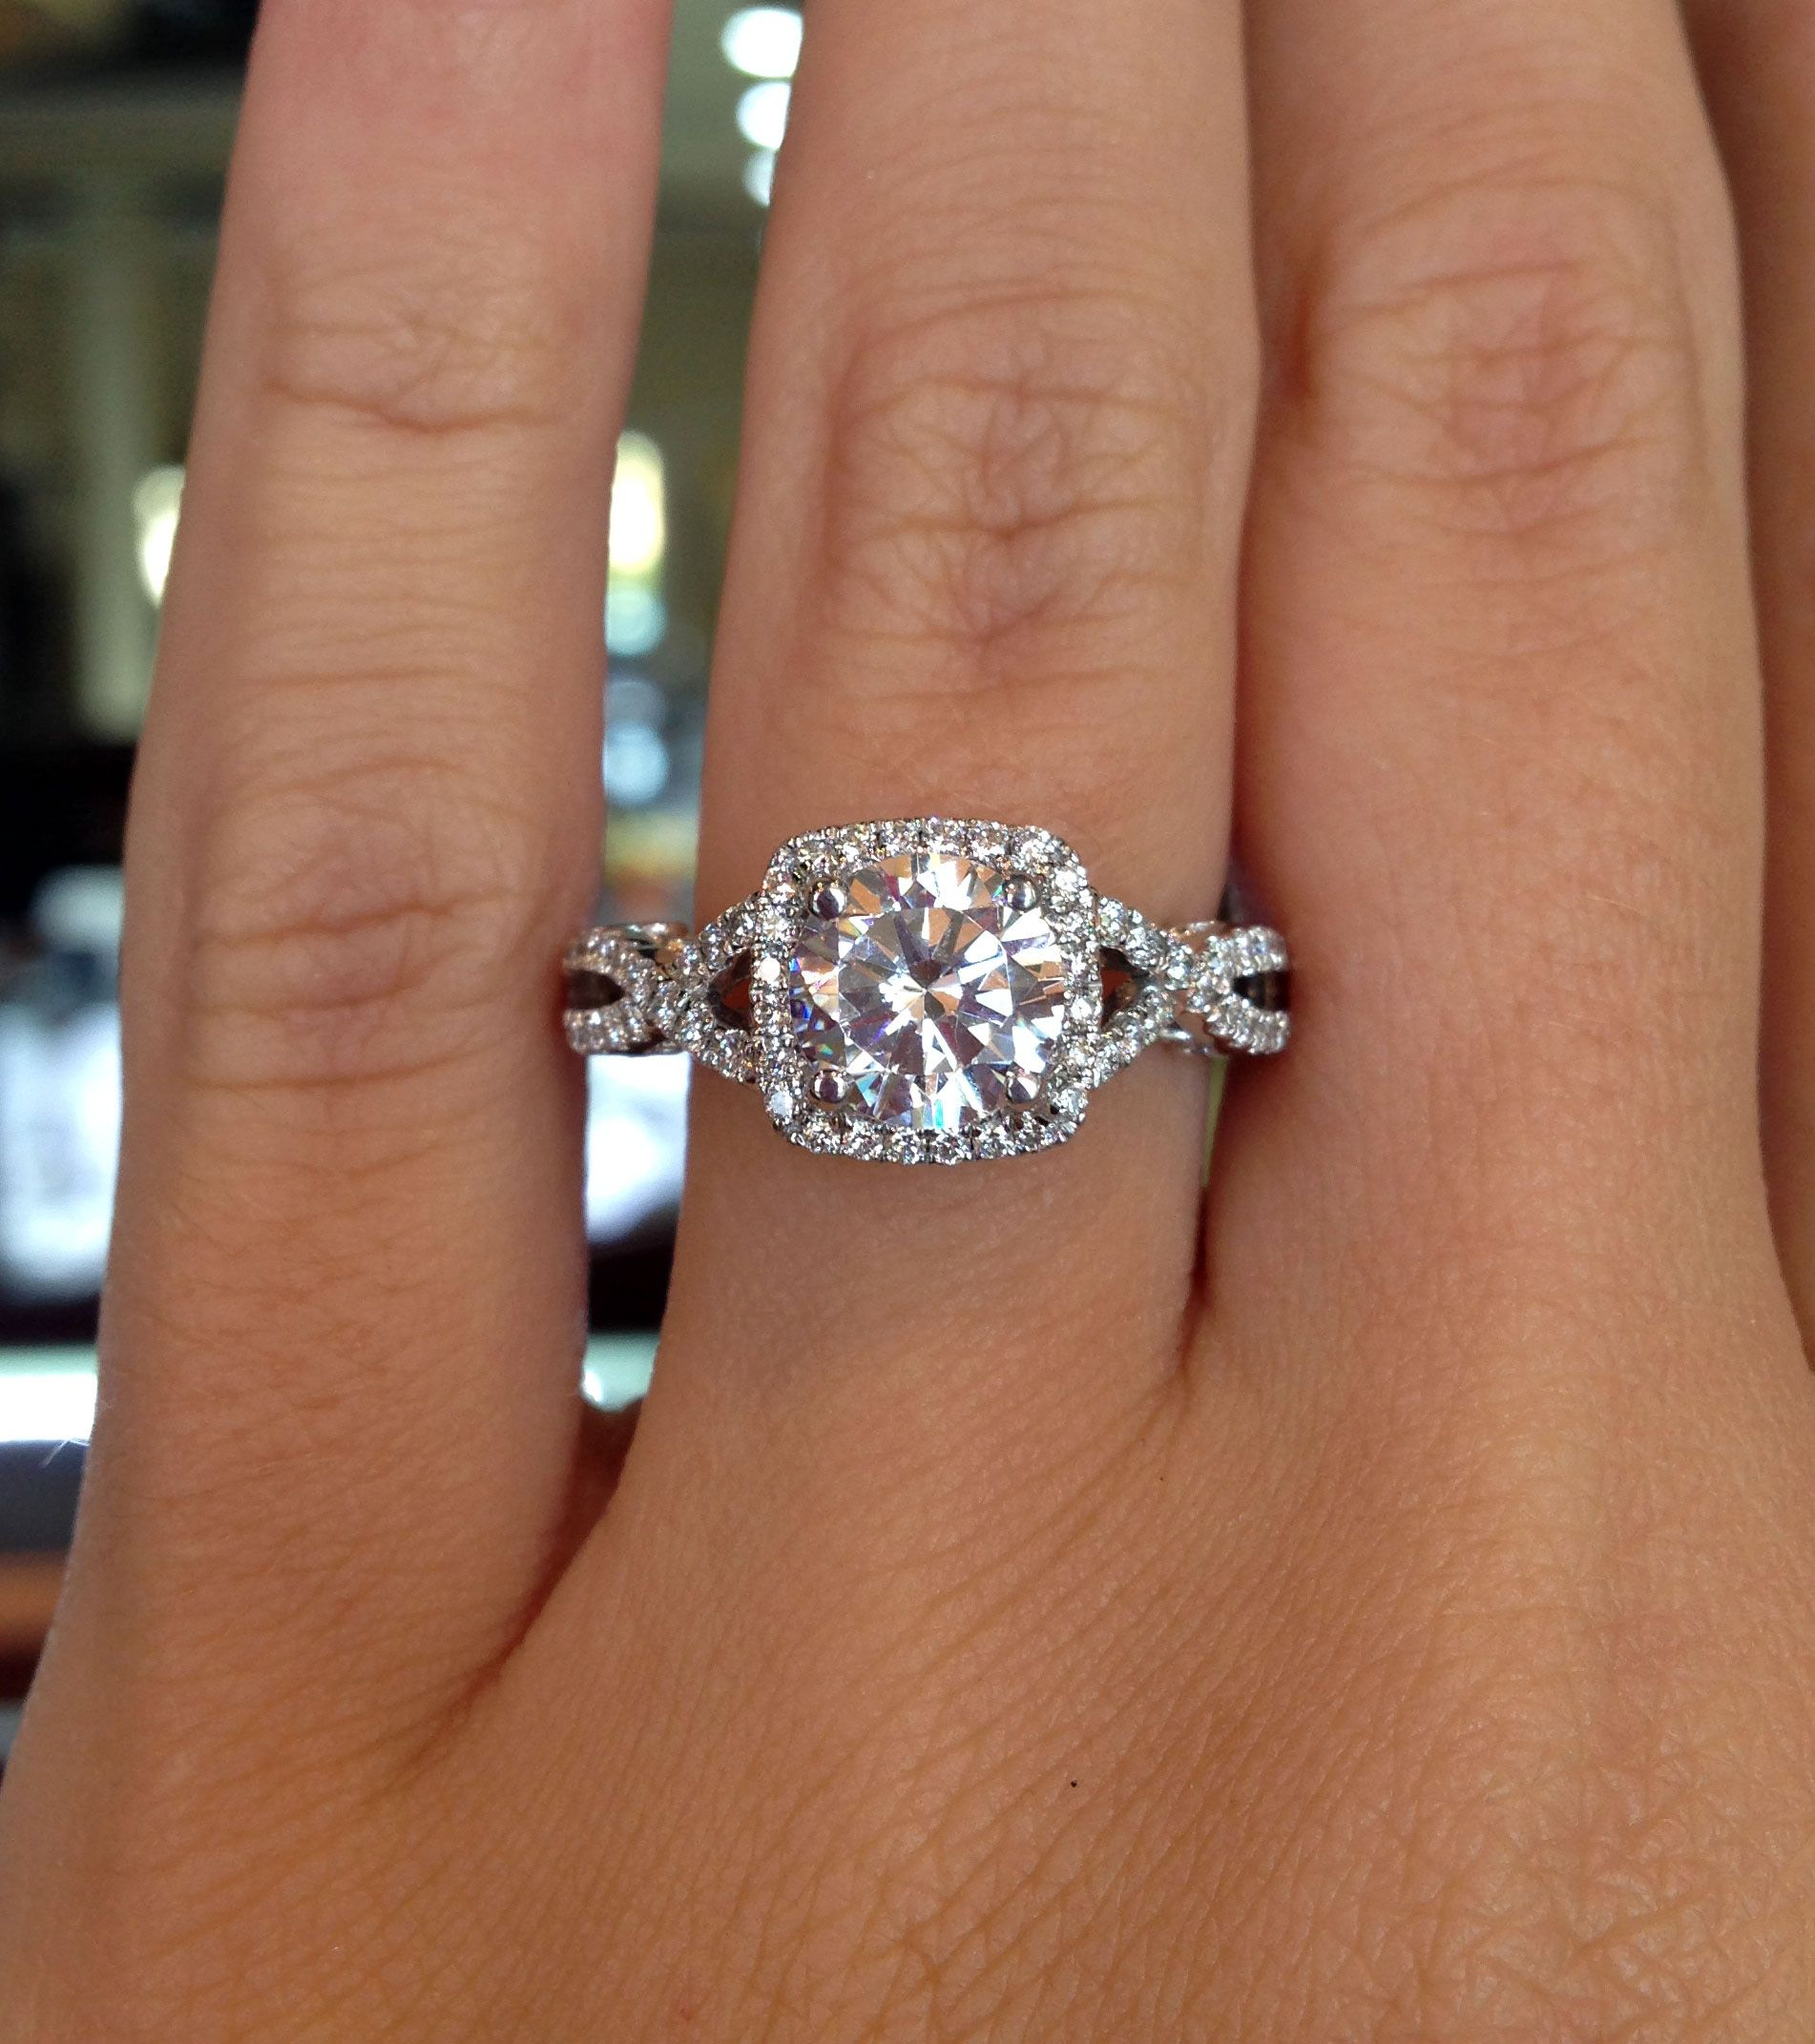 My Perfect Ring This Legit Dream The Twisted Double Band With Diamonds And A Large Square Diamond In Middle